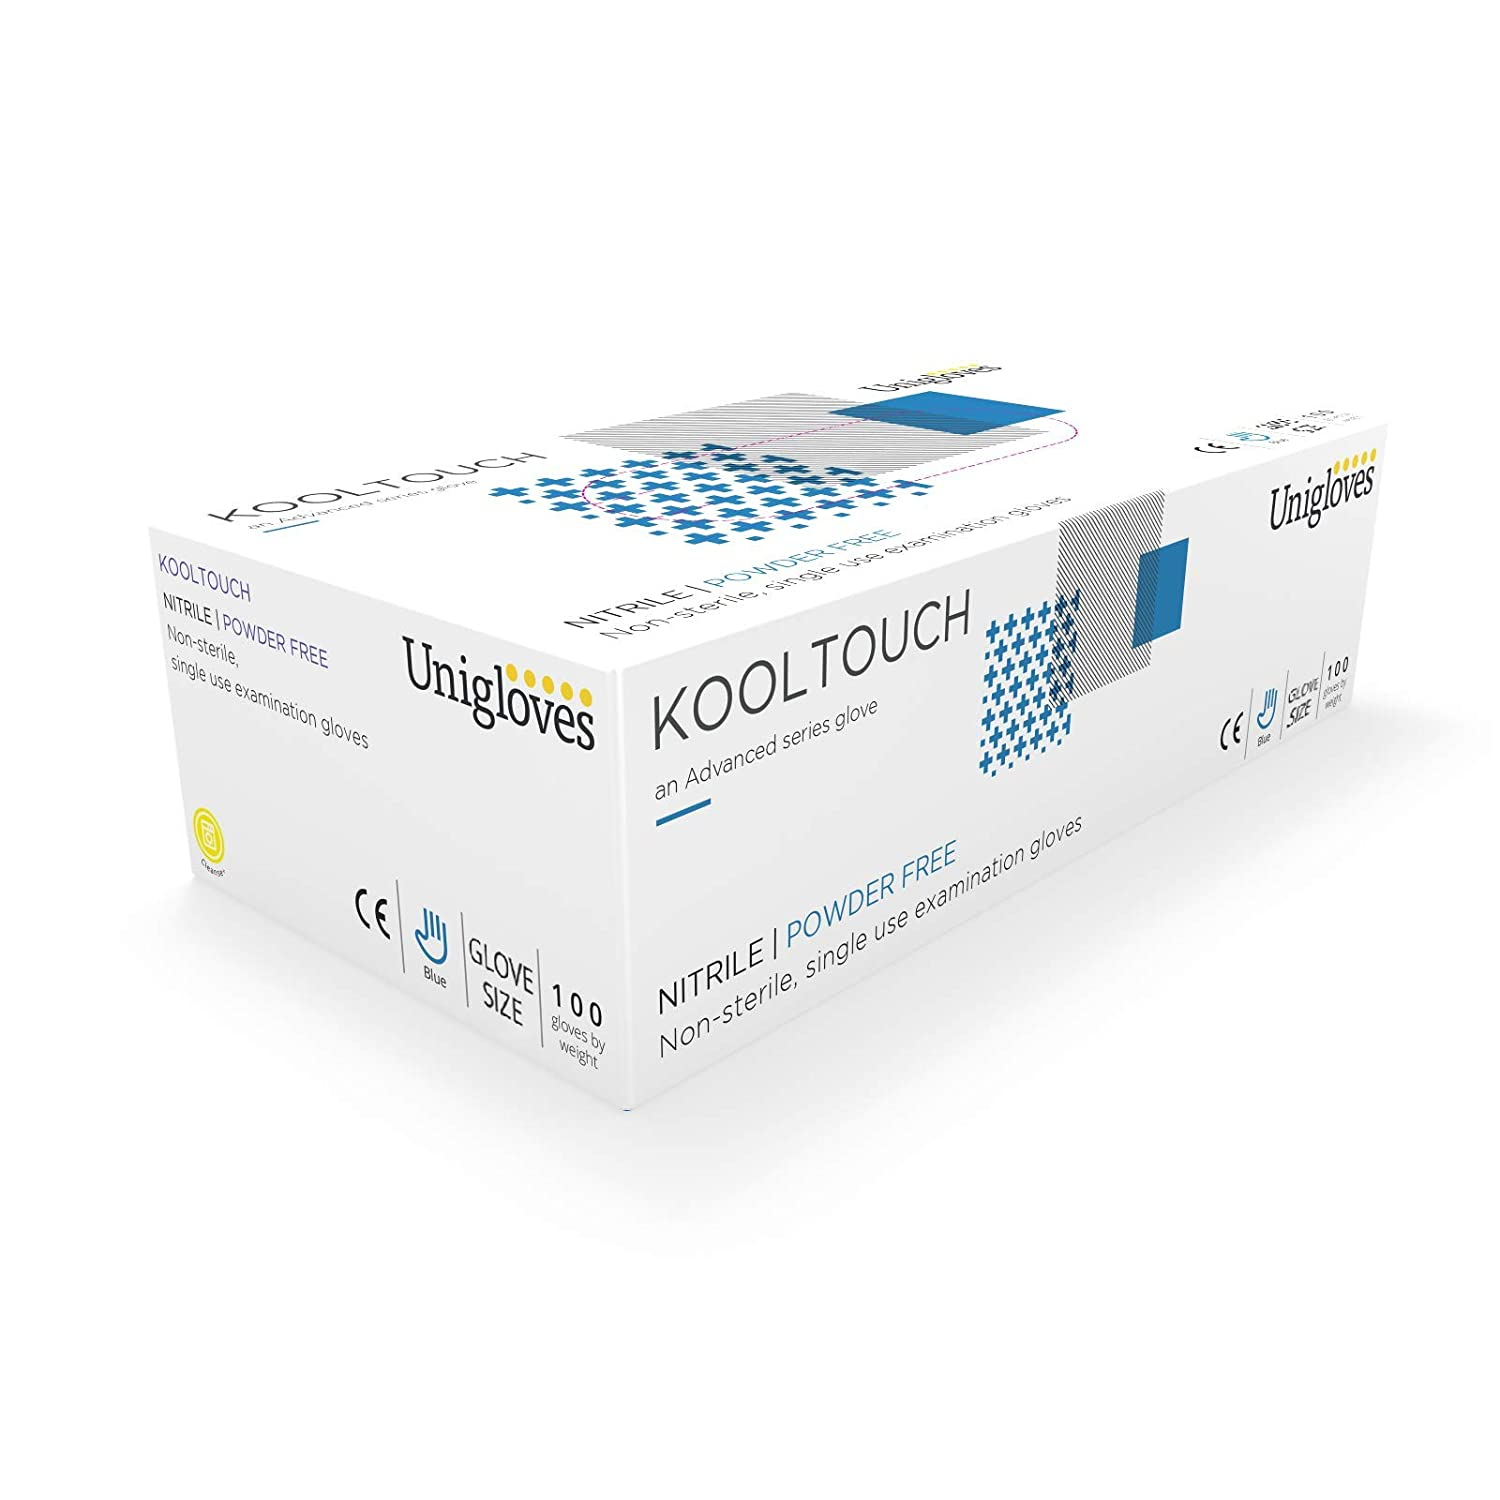 Unigloves GM0041 Kool touch Powder Free Nitrile Gloves, X-Small, Blue (Pack of 100)